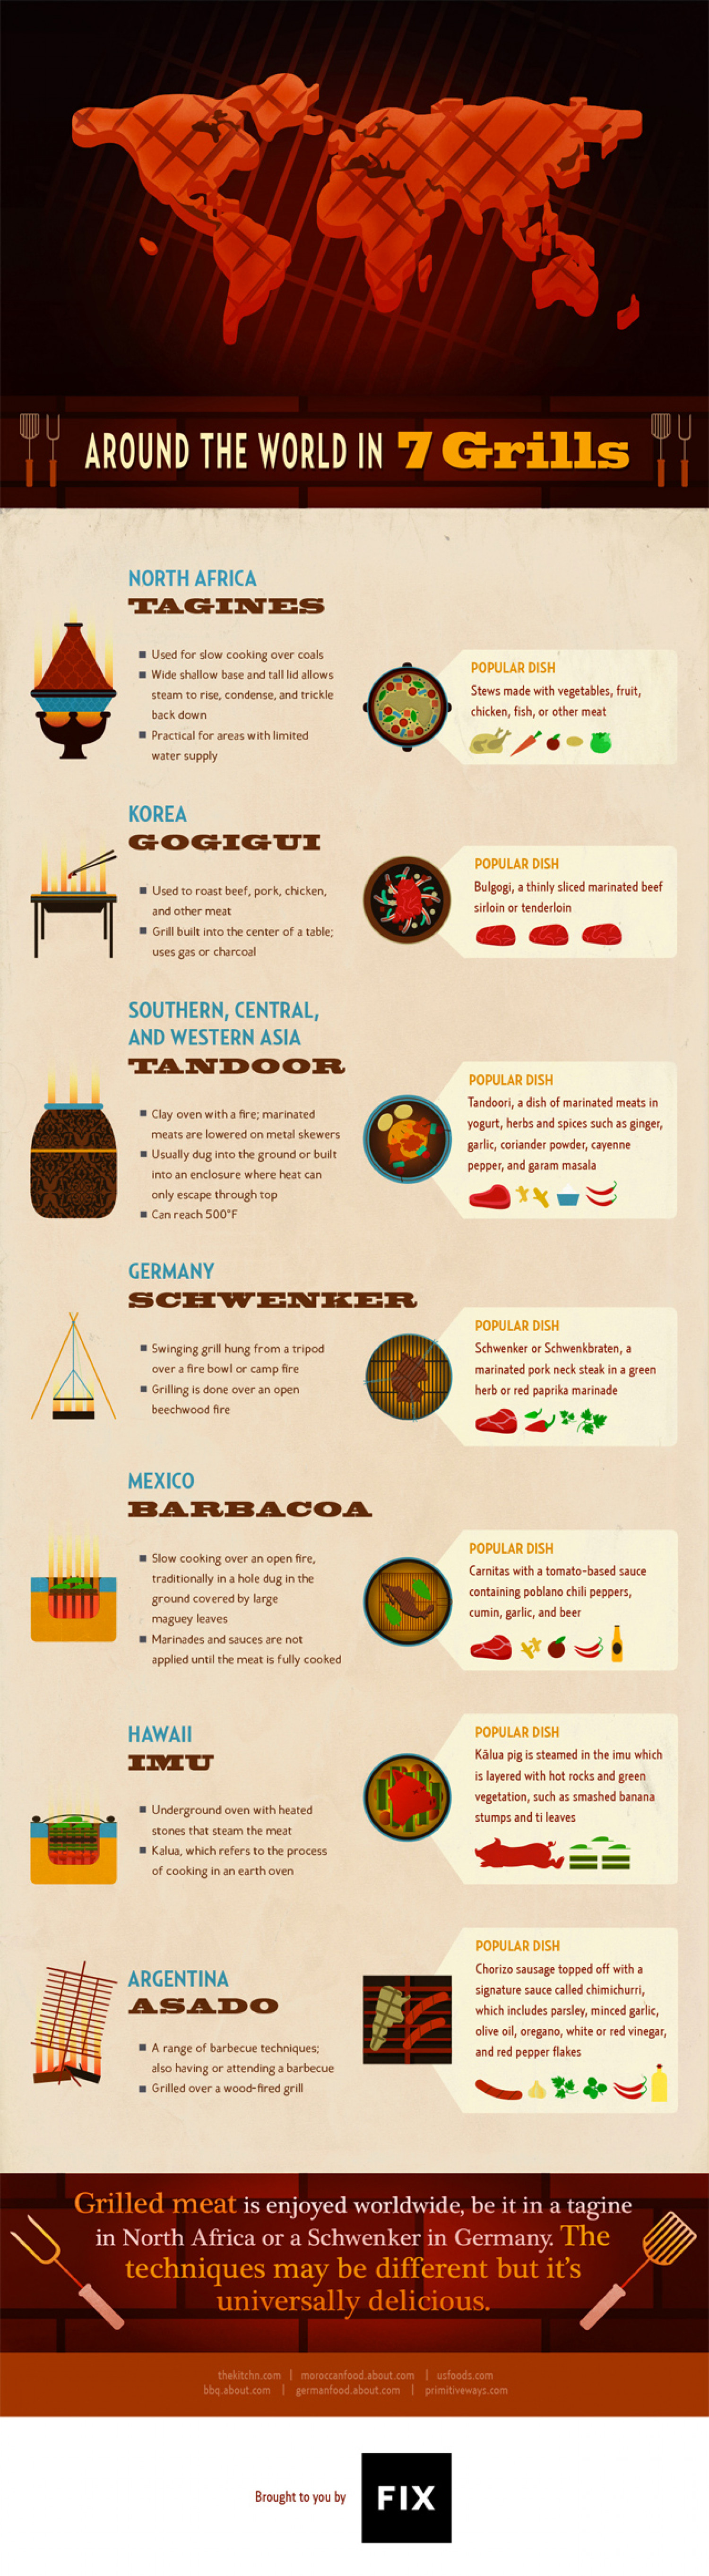 Around the World in 7 Grills Infographic